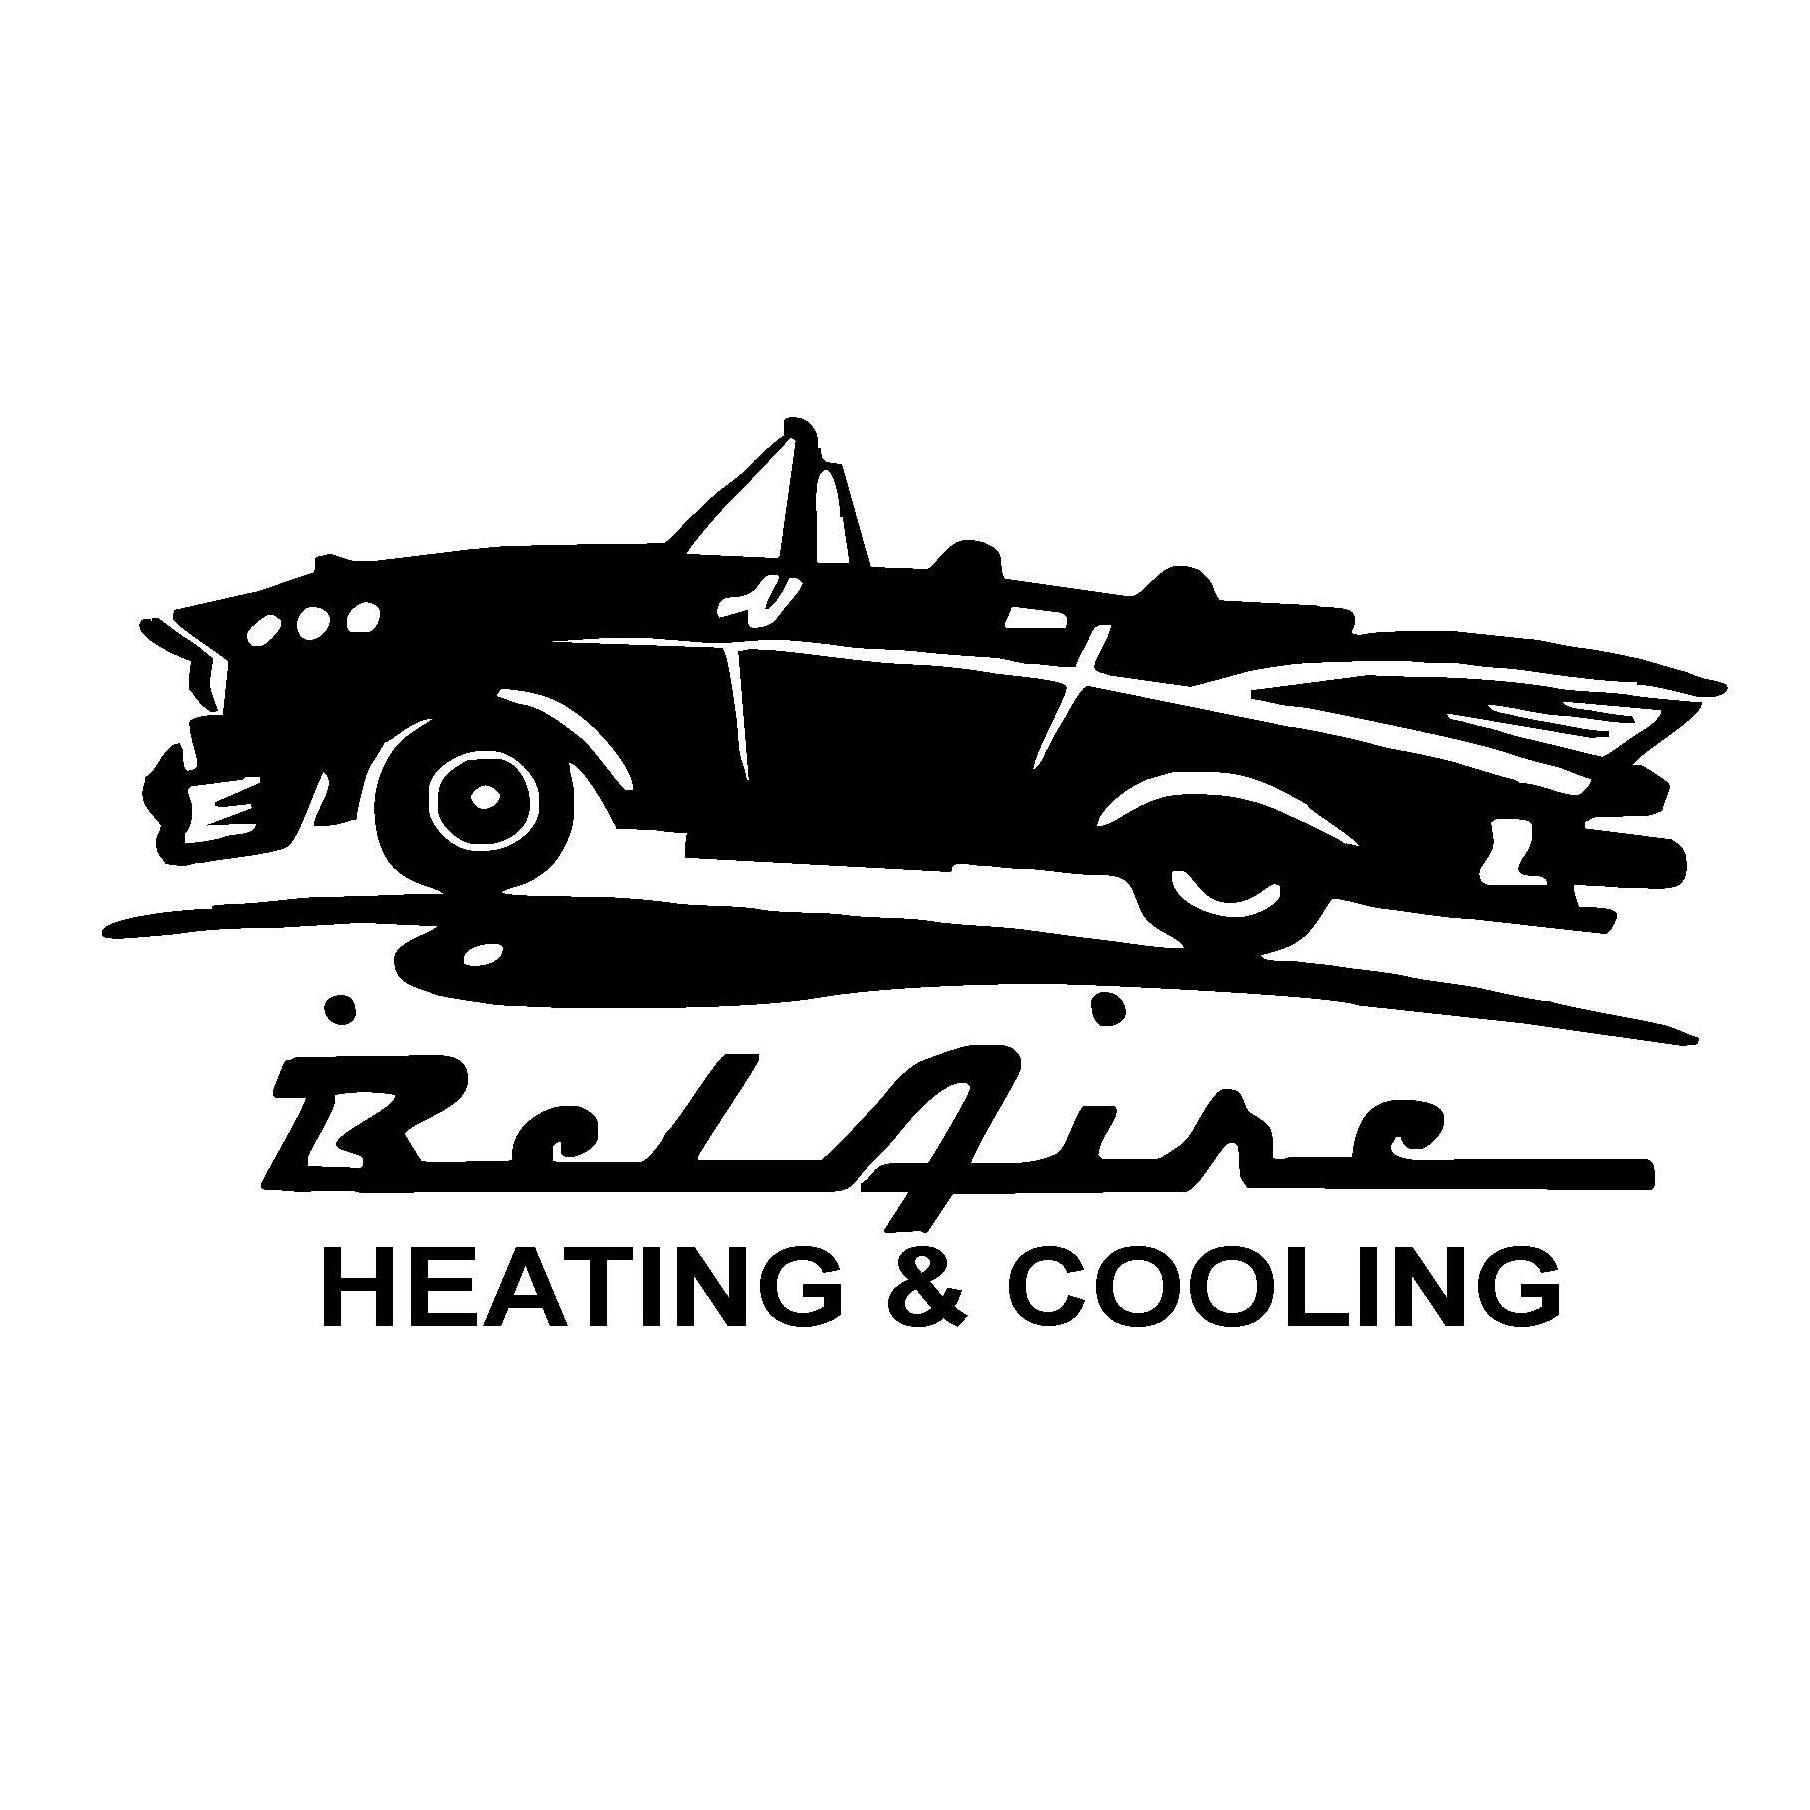 Bel Aire Heating & Cooling